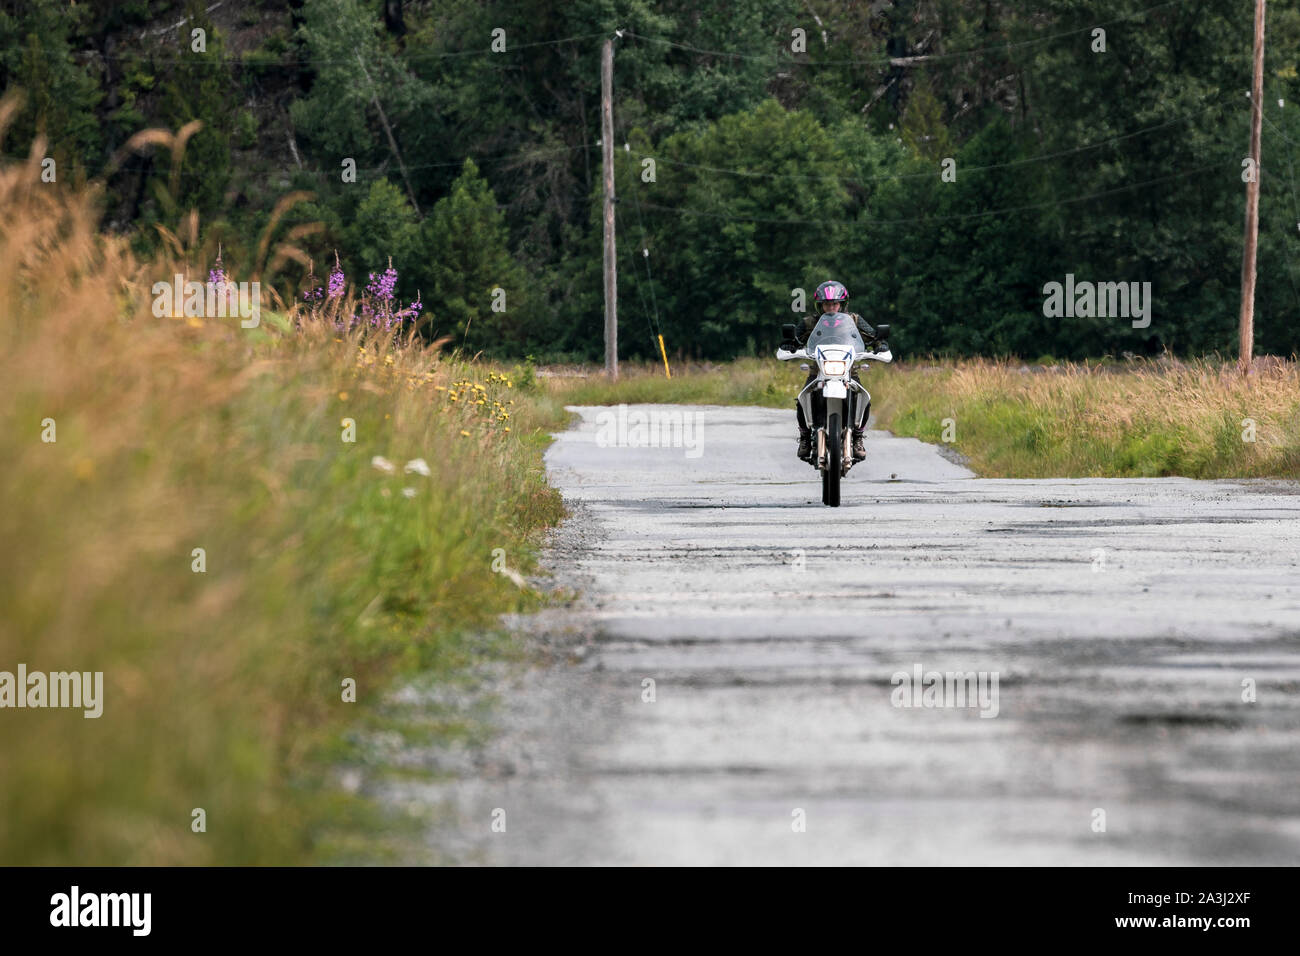 A woman rides her motorcycle on a cloudy summer day. Stock Photo